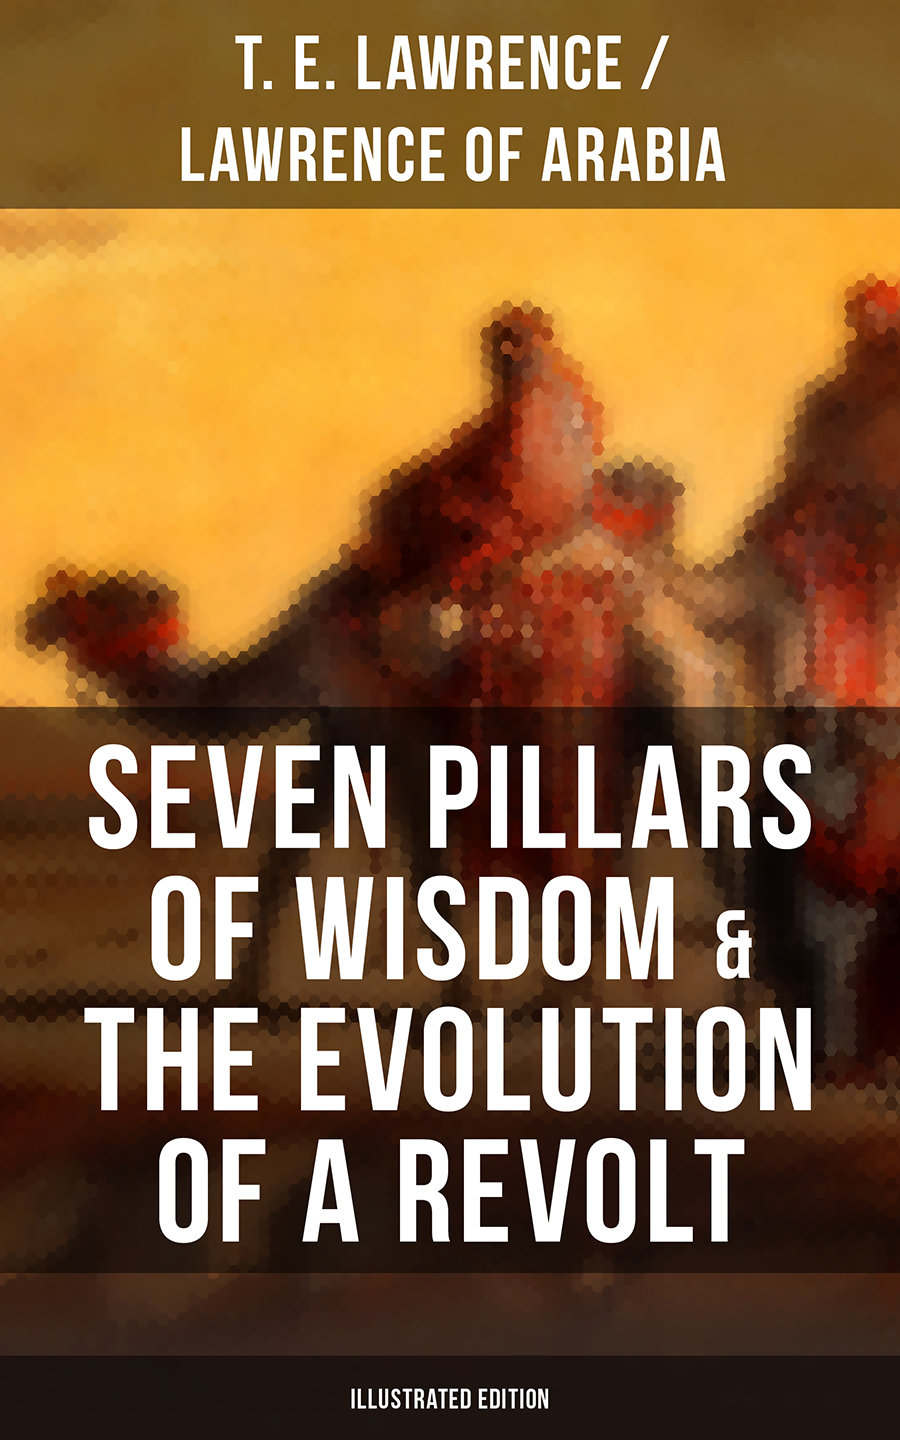 T. E. Lawrence / Lawrence of Arabia Seven Pillars of Wisdom & The Evolution of a Revolt (Illustrated Edition) цена